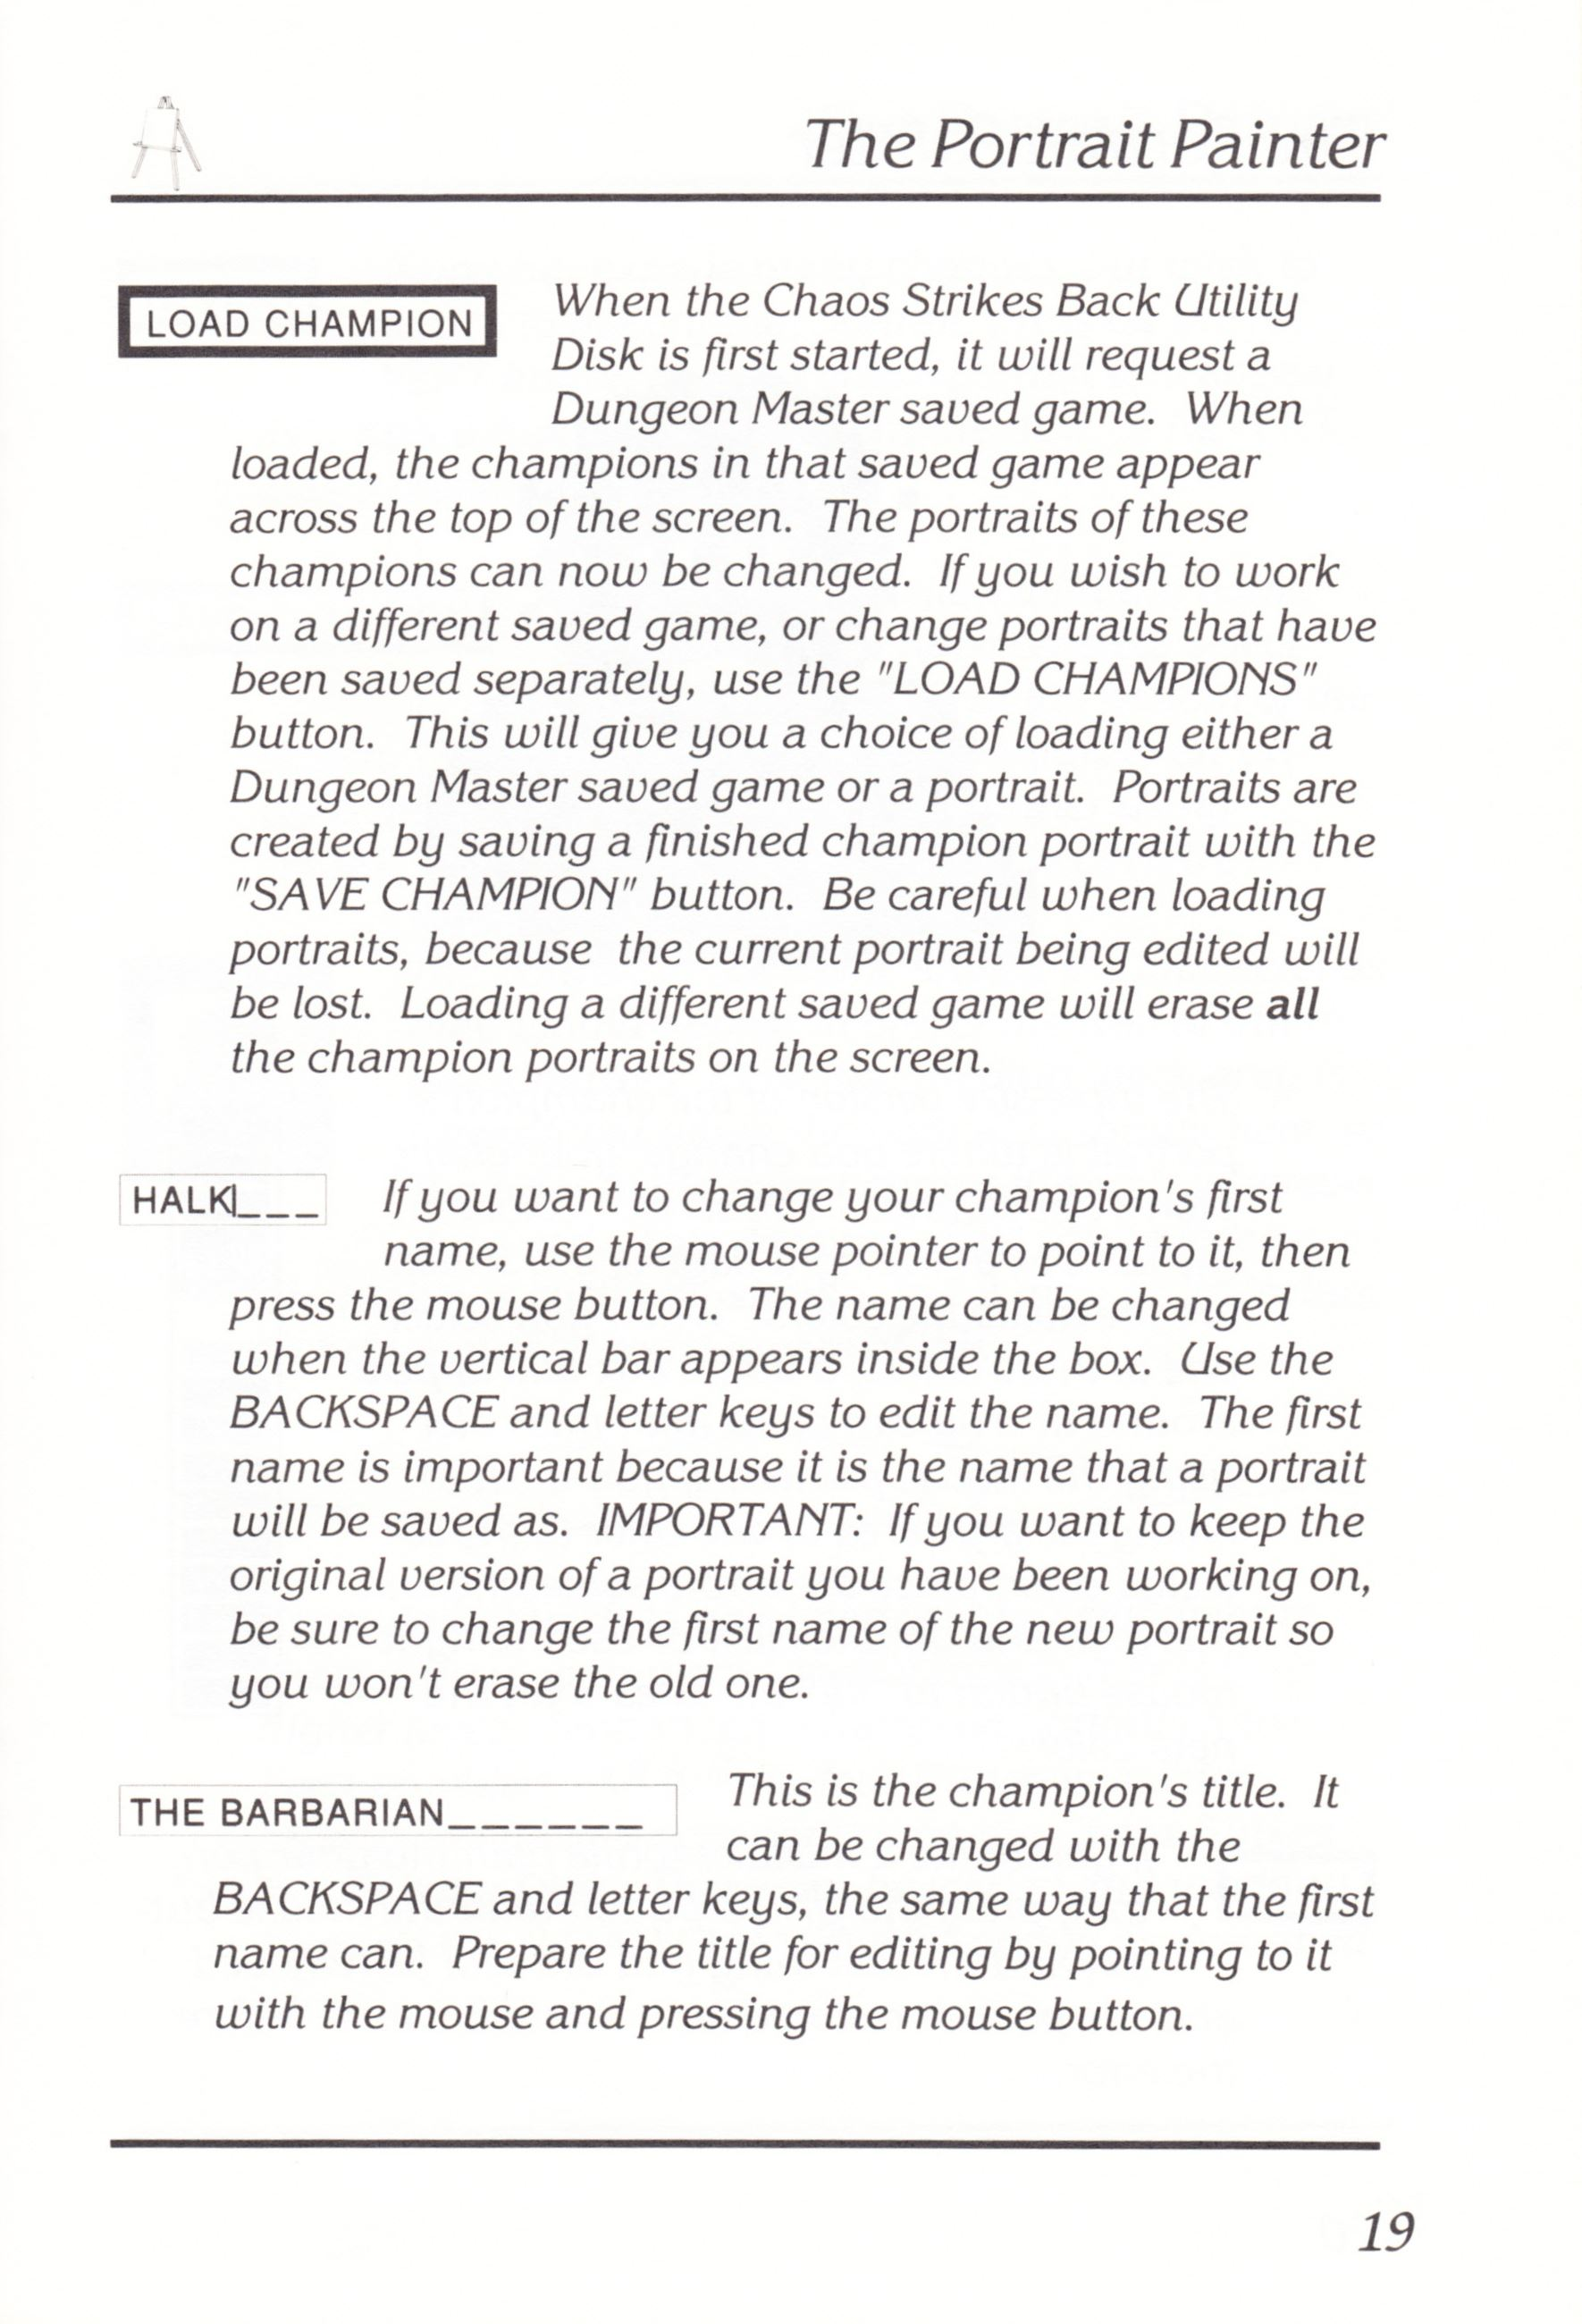 Game - Chaos Strikes Back - UK - Amiga - Manual - Page 021 - Scan